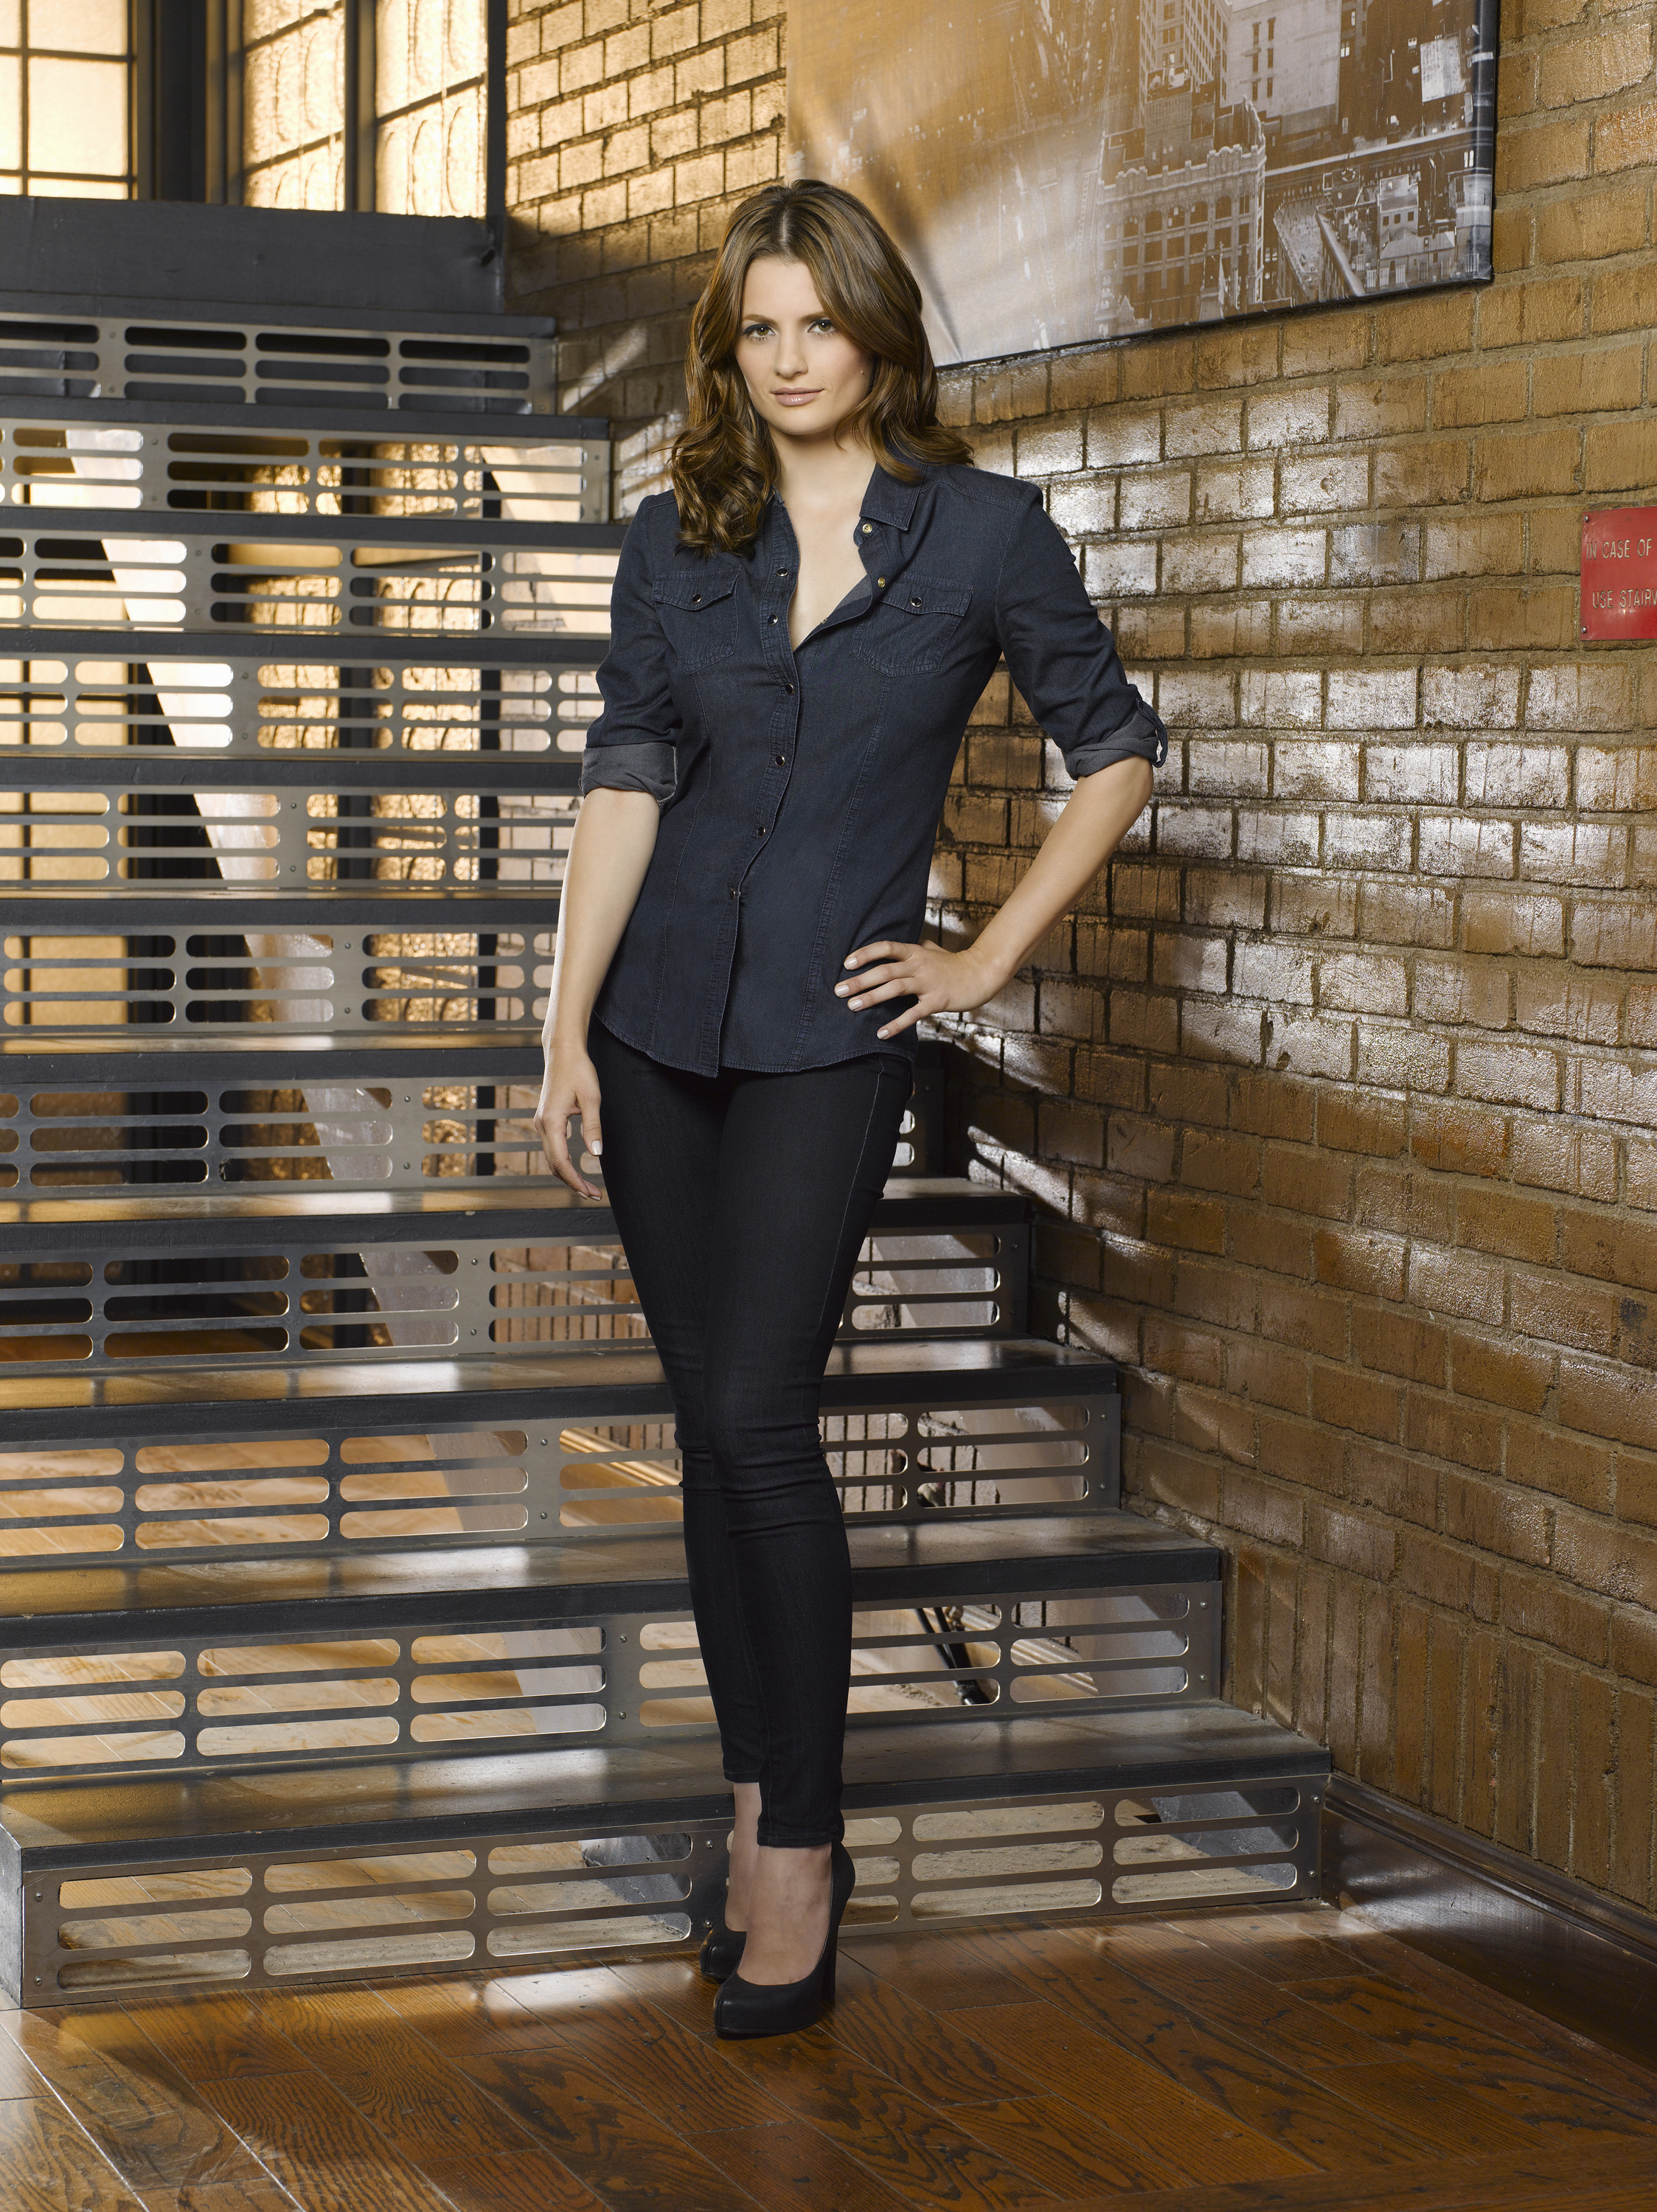 Castle TV Series Stana Katic as Kate Beckett  DVDbash